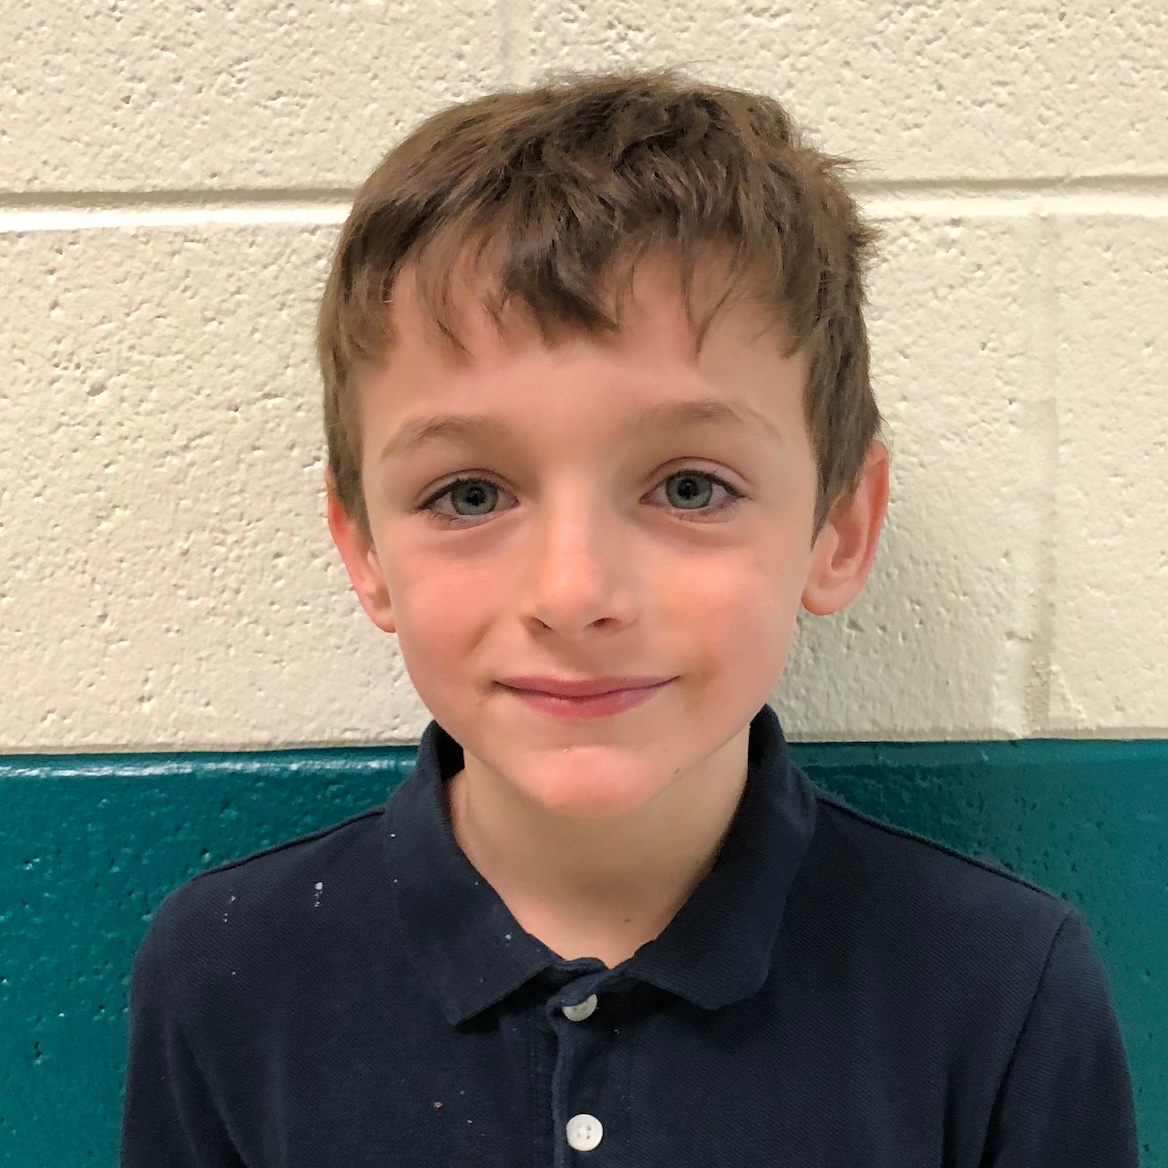 Achieve Reader of the Month for April